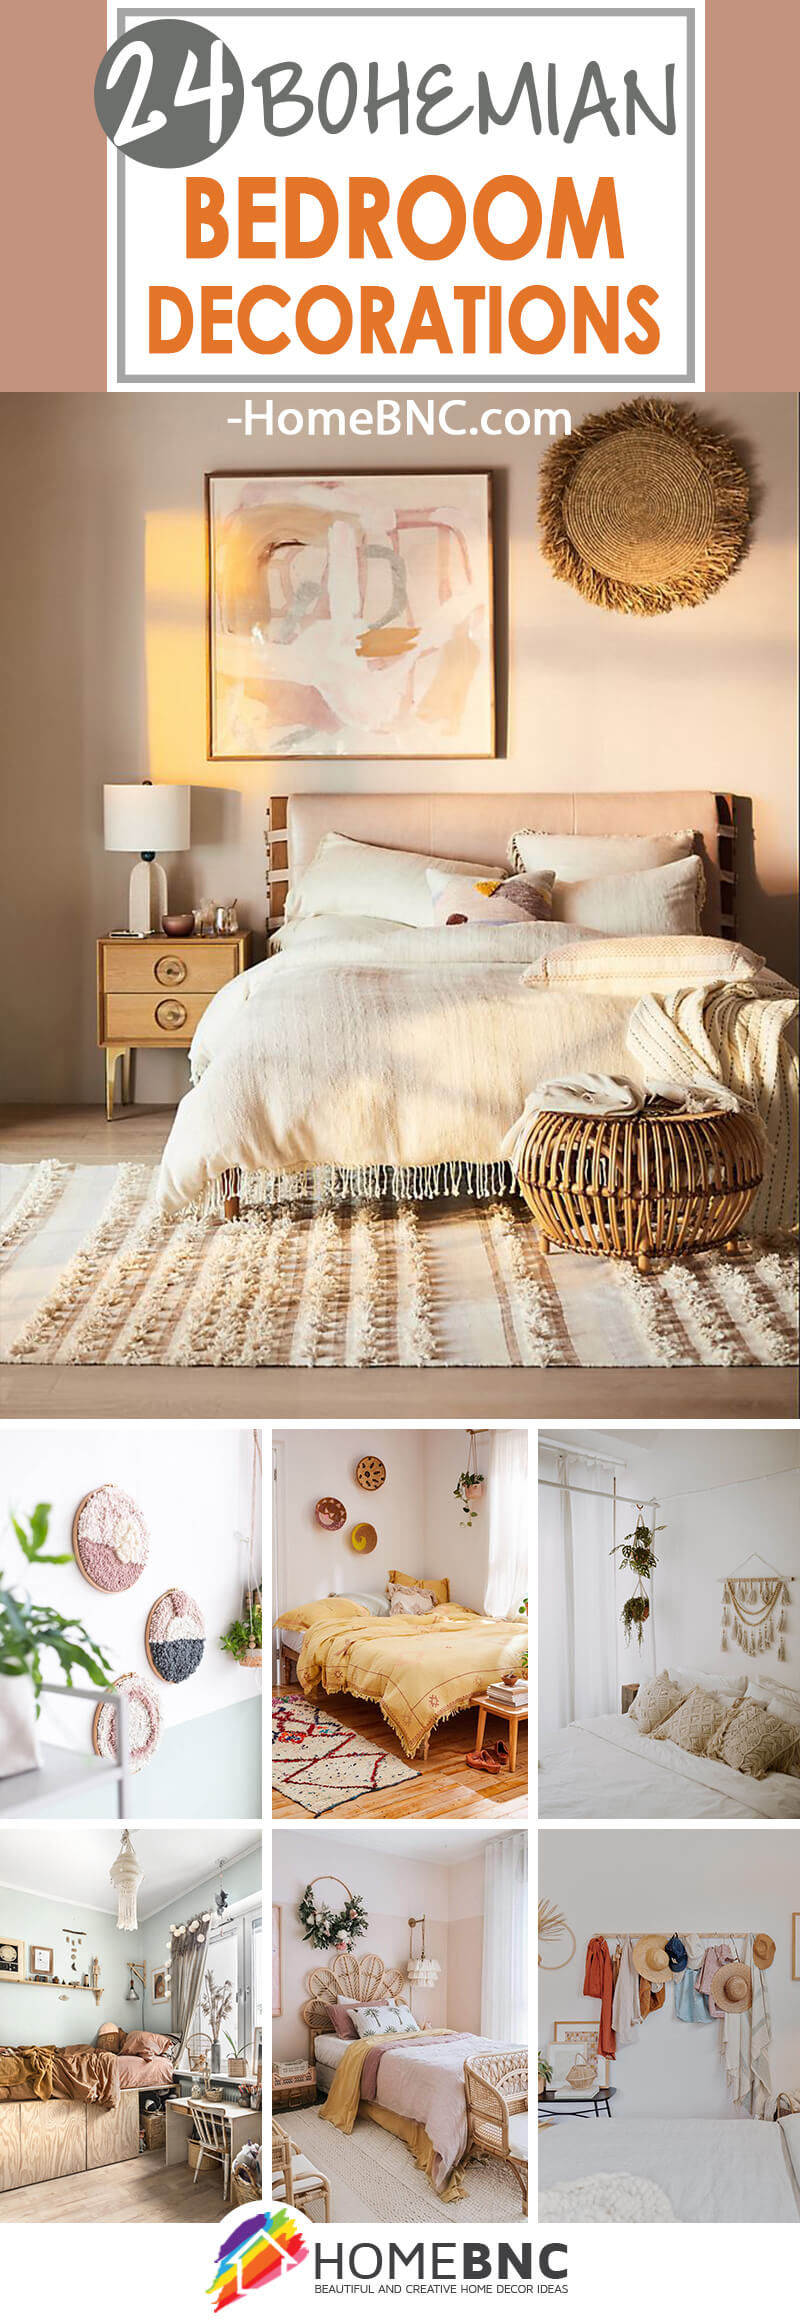 24 Best Bohemian Bedroom Decor Ideas To Spruce Up Your Space In 2020